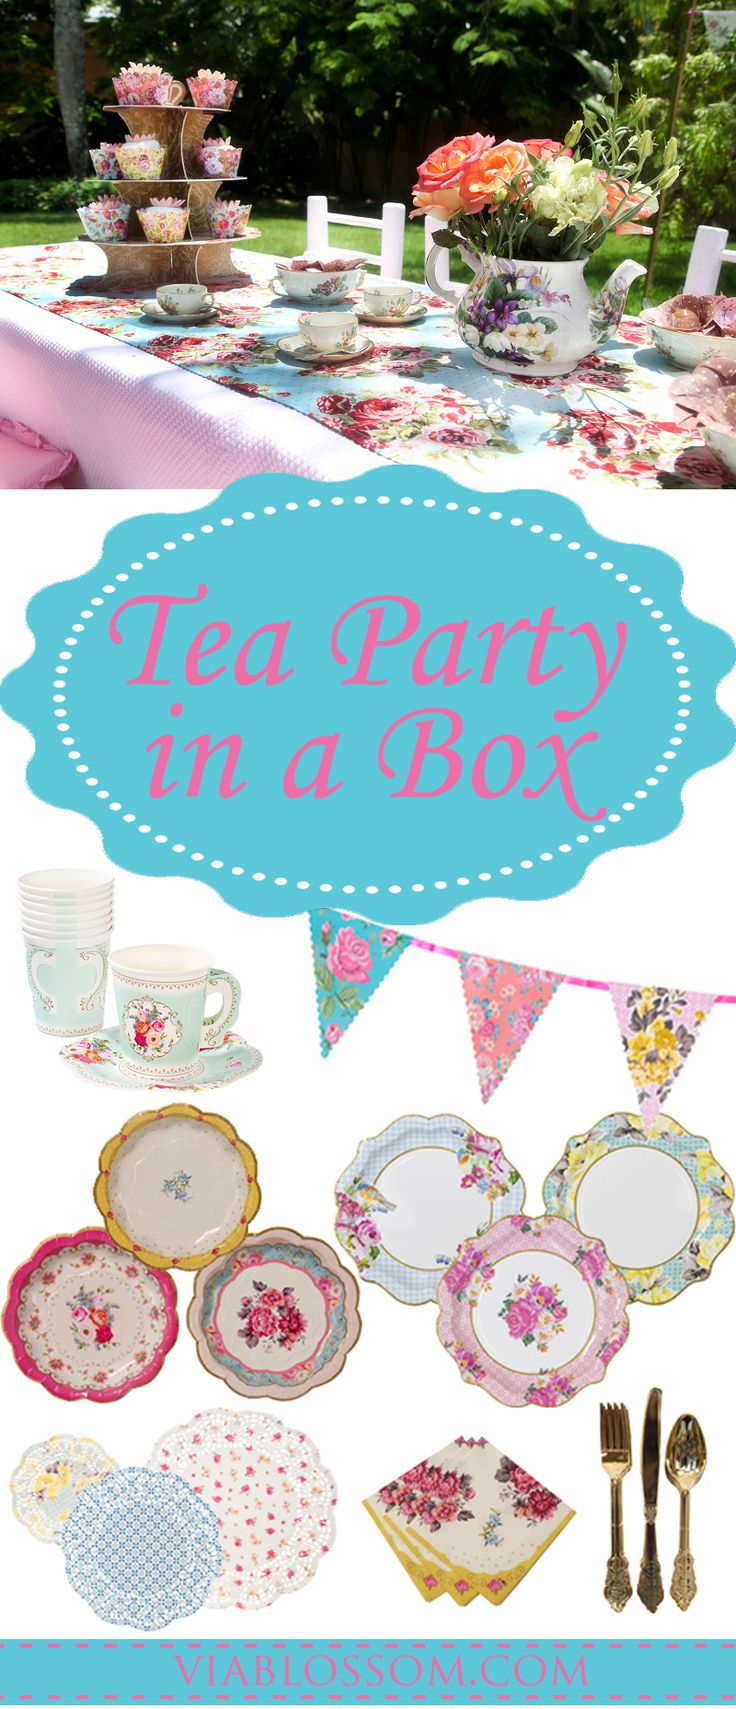 A Tea Party for 12 guests with our Tea Party in a Box! In this party pack we have included our favorite Tea Party Supplies for easy shopping at a lower cost!  #teapartyideas #teapartysupplies #teapartybirthday #madhatterpartyideas